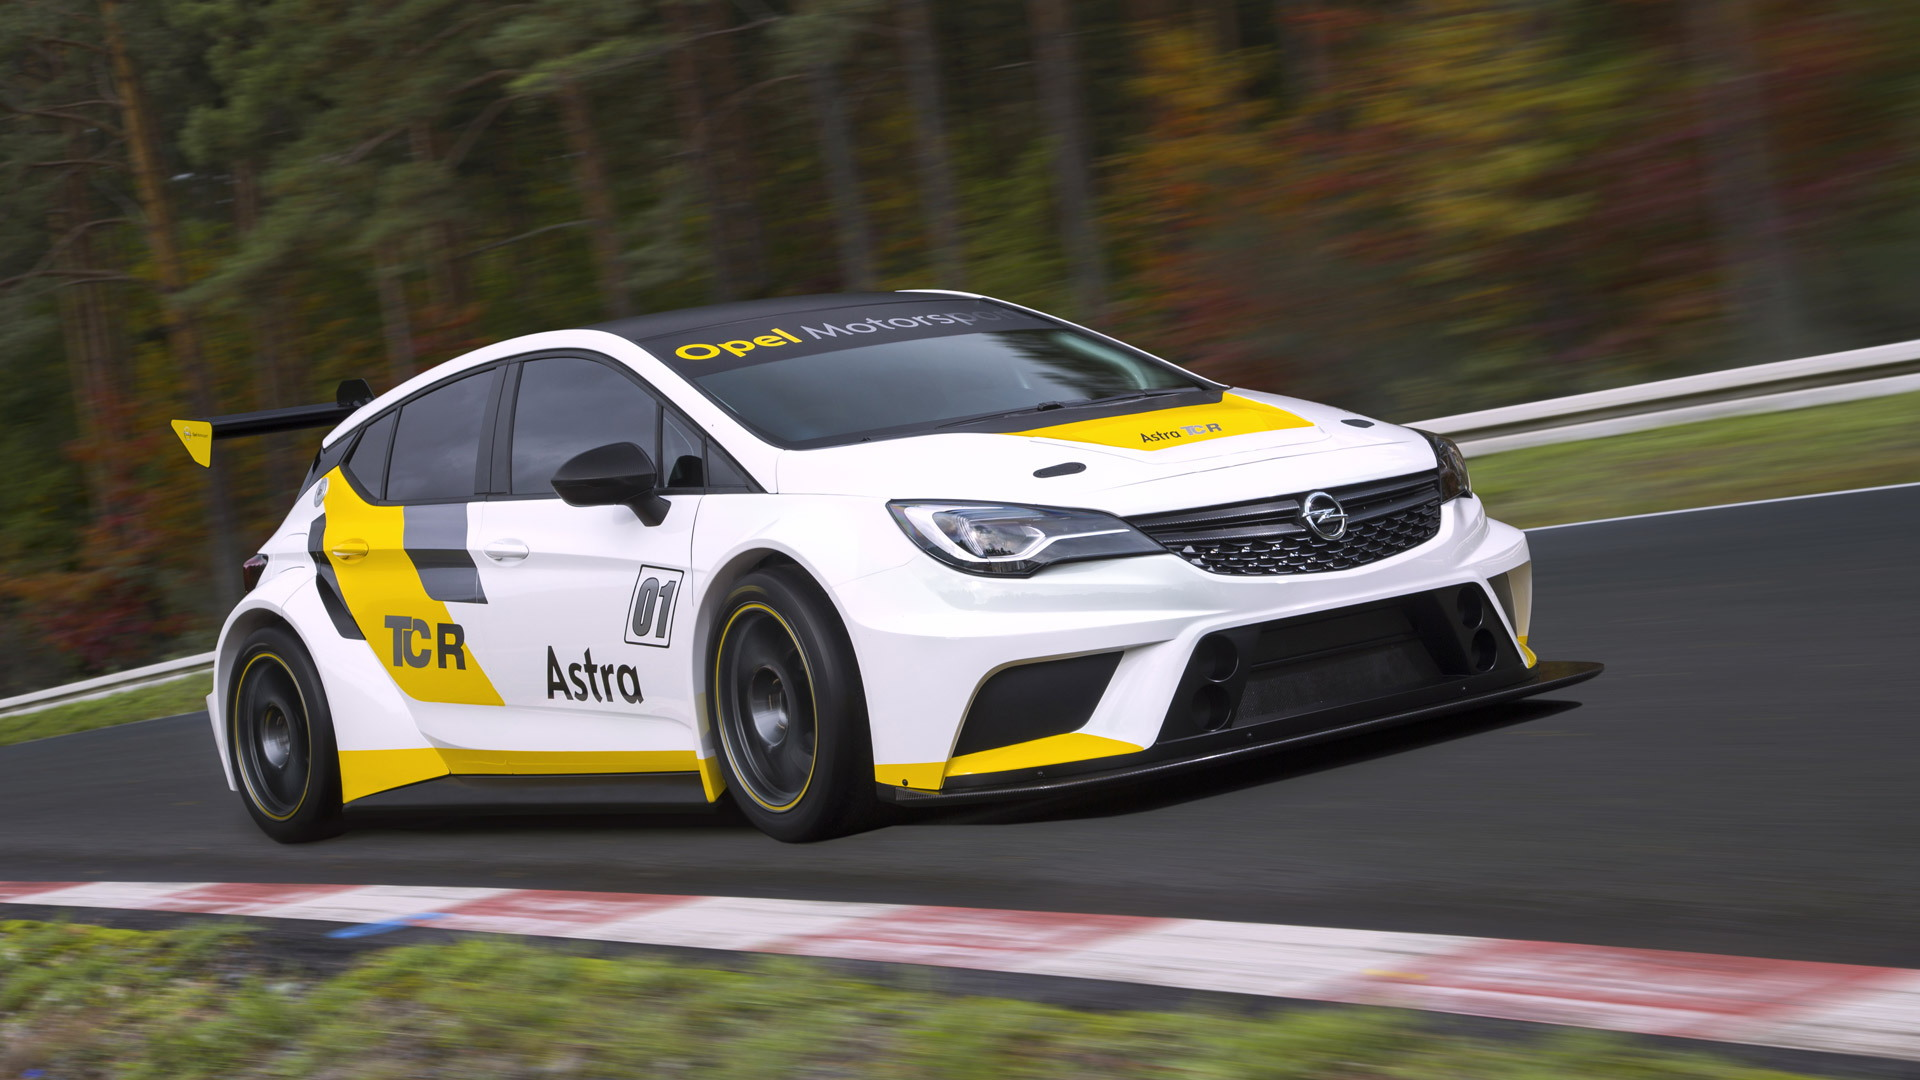 2016 Opel Astra TCR race car